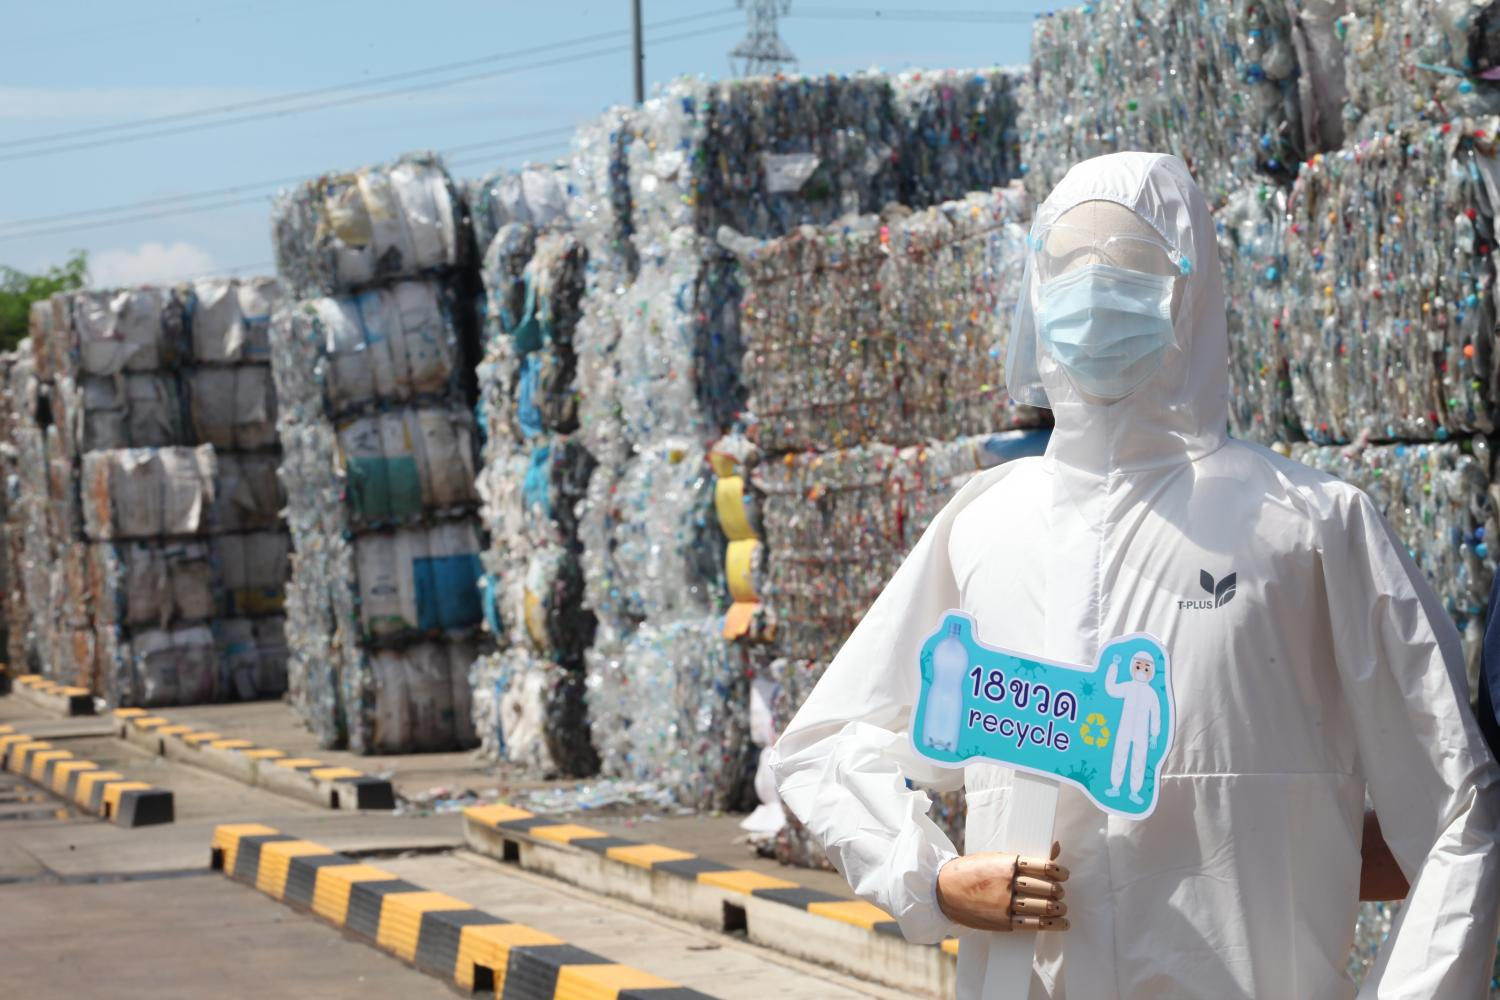 From rubbish to respect: Recycled plastic bottles about to be used to produce protection gowns at Indorama Ventures' recycling plant in Nakhon Pathom.